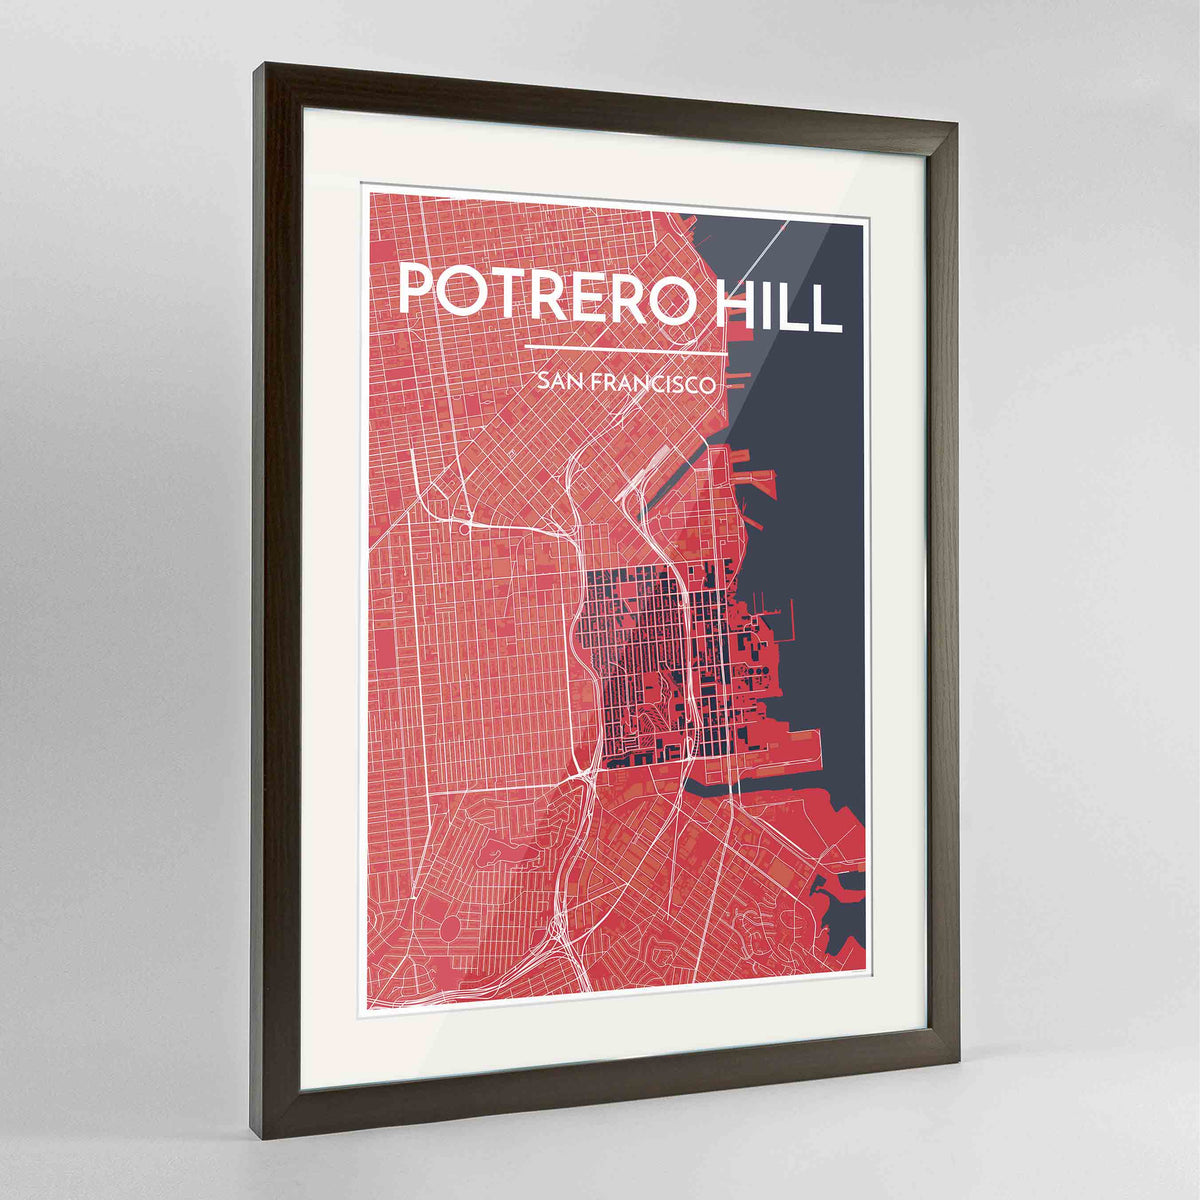 "Framed Potrero Hill San Francisco Map Art Print 24x36"" Contemporary Walnut frame Point Two Design Group"